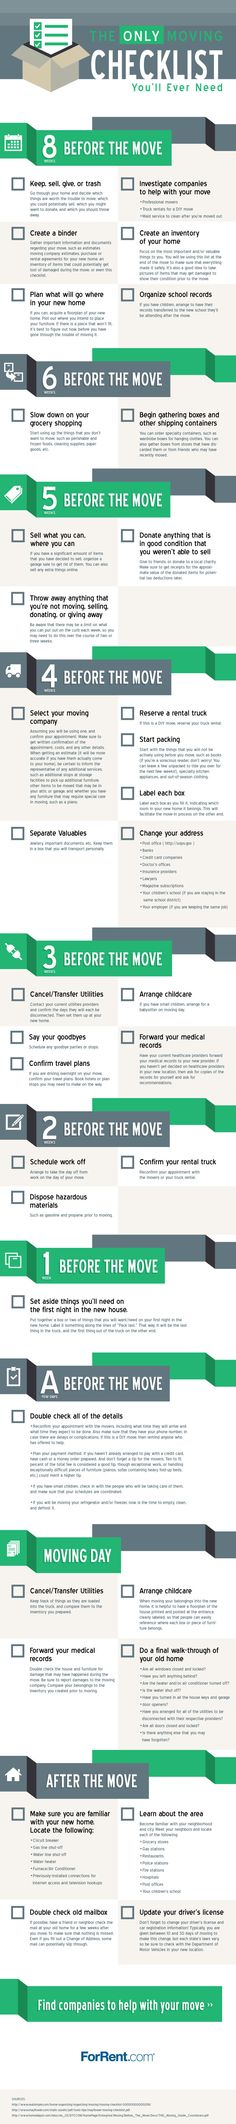 Free Address Change Checklist  Address Change Big Move And Free